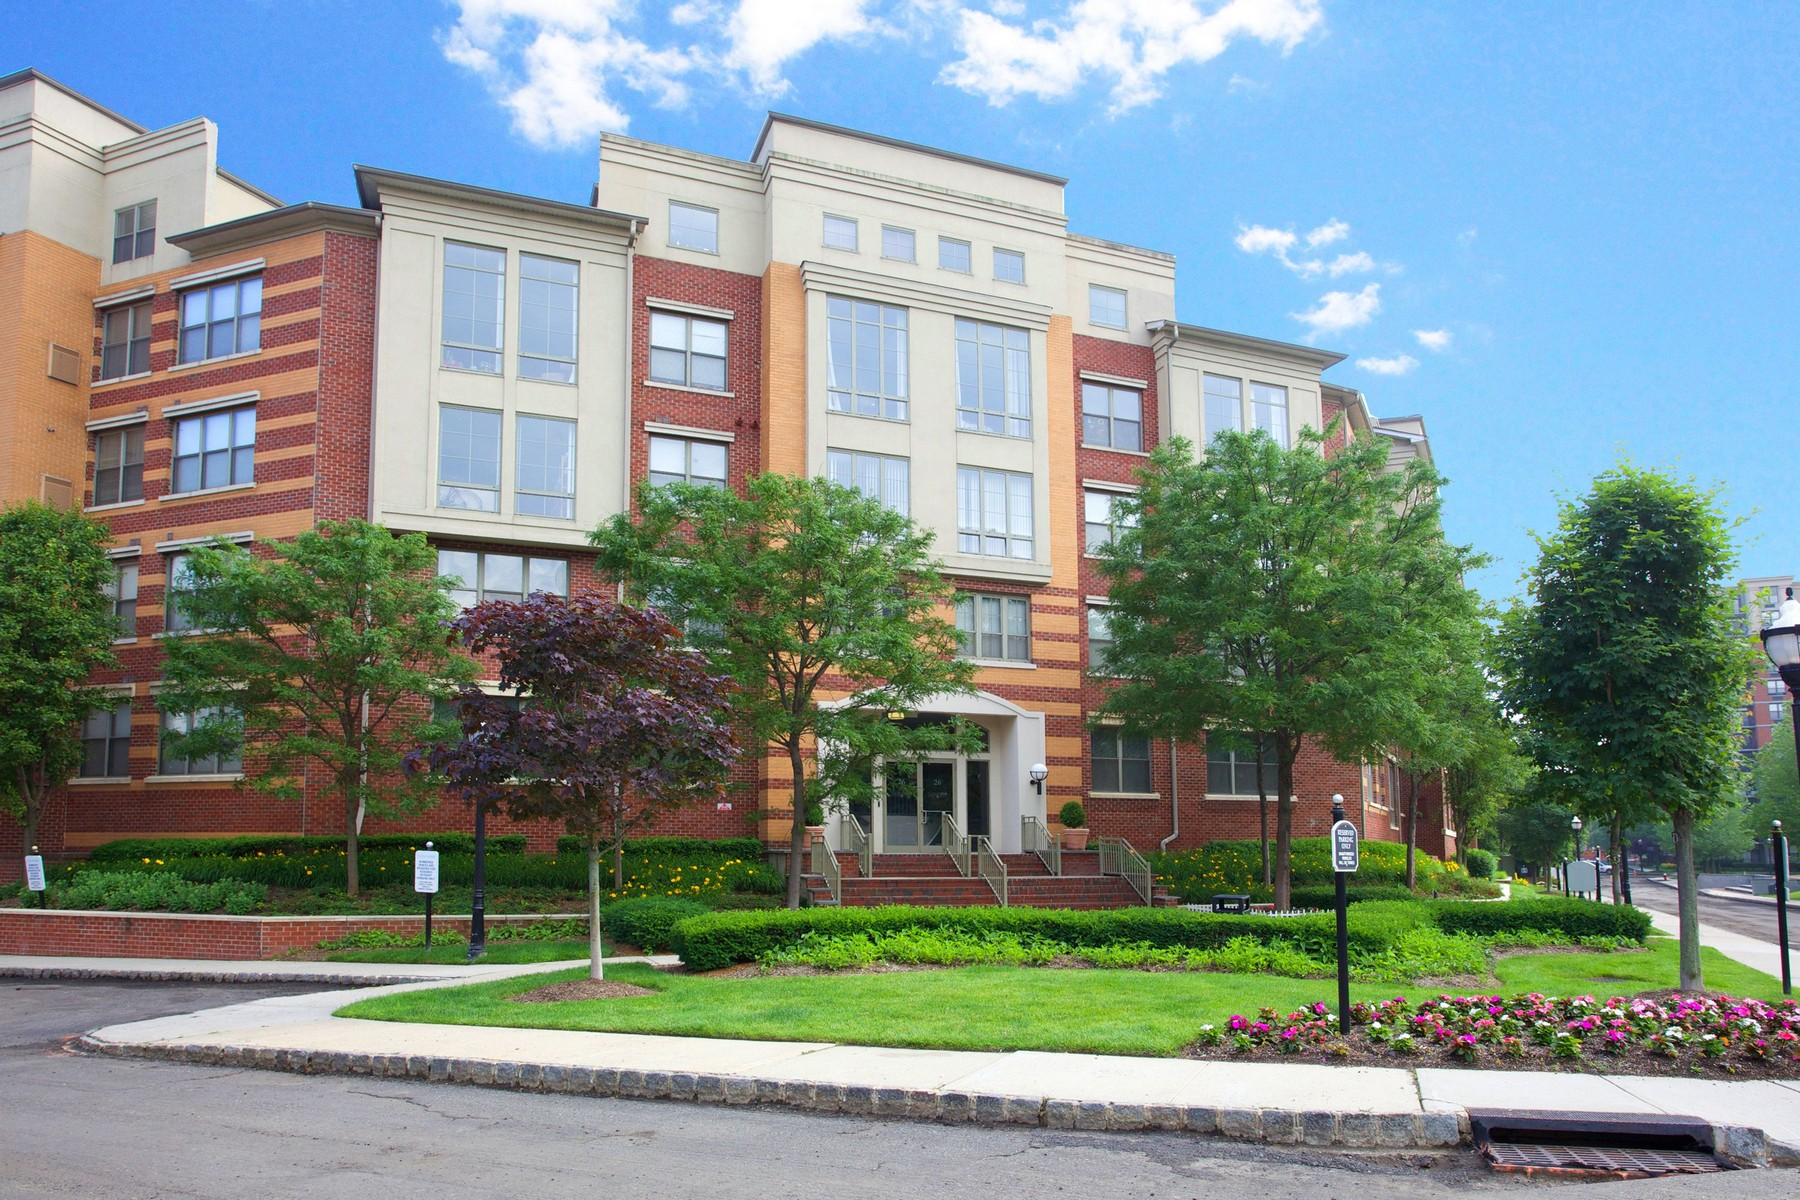 Condominium for Sale at Beautiful condo with courtyard views 26 Avenue at Port Imperial#333 Hudson Club West New York, New Jersey 07093 United States